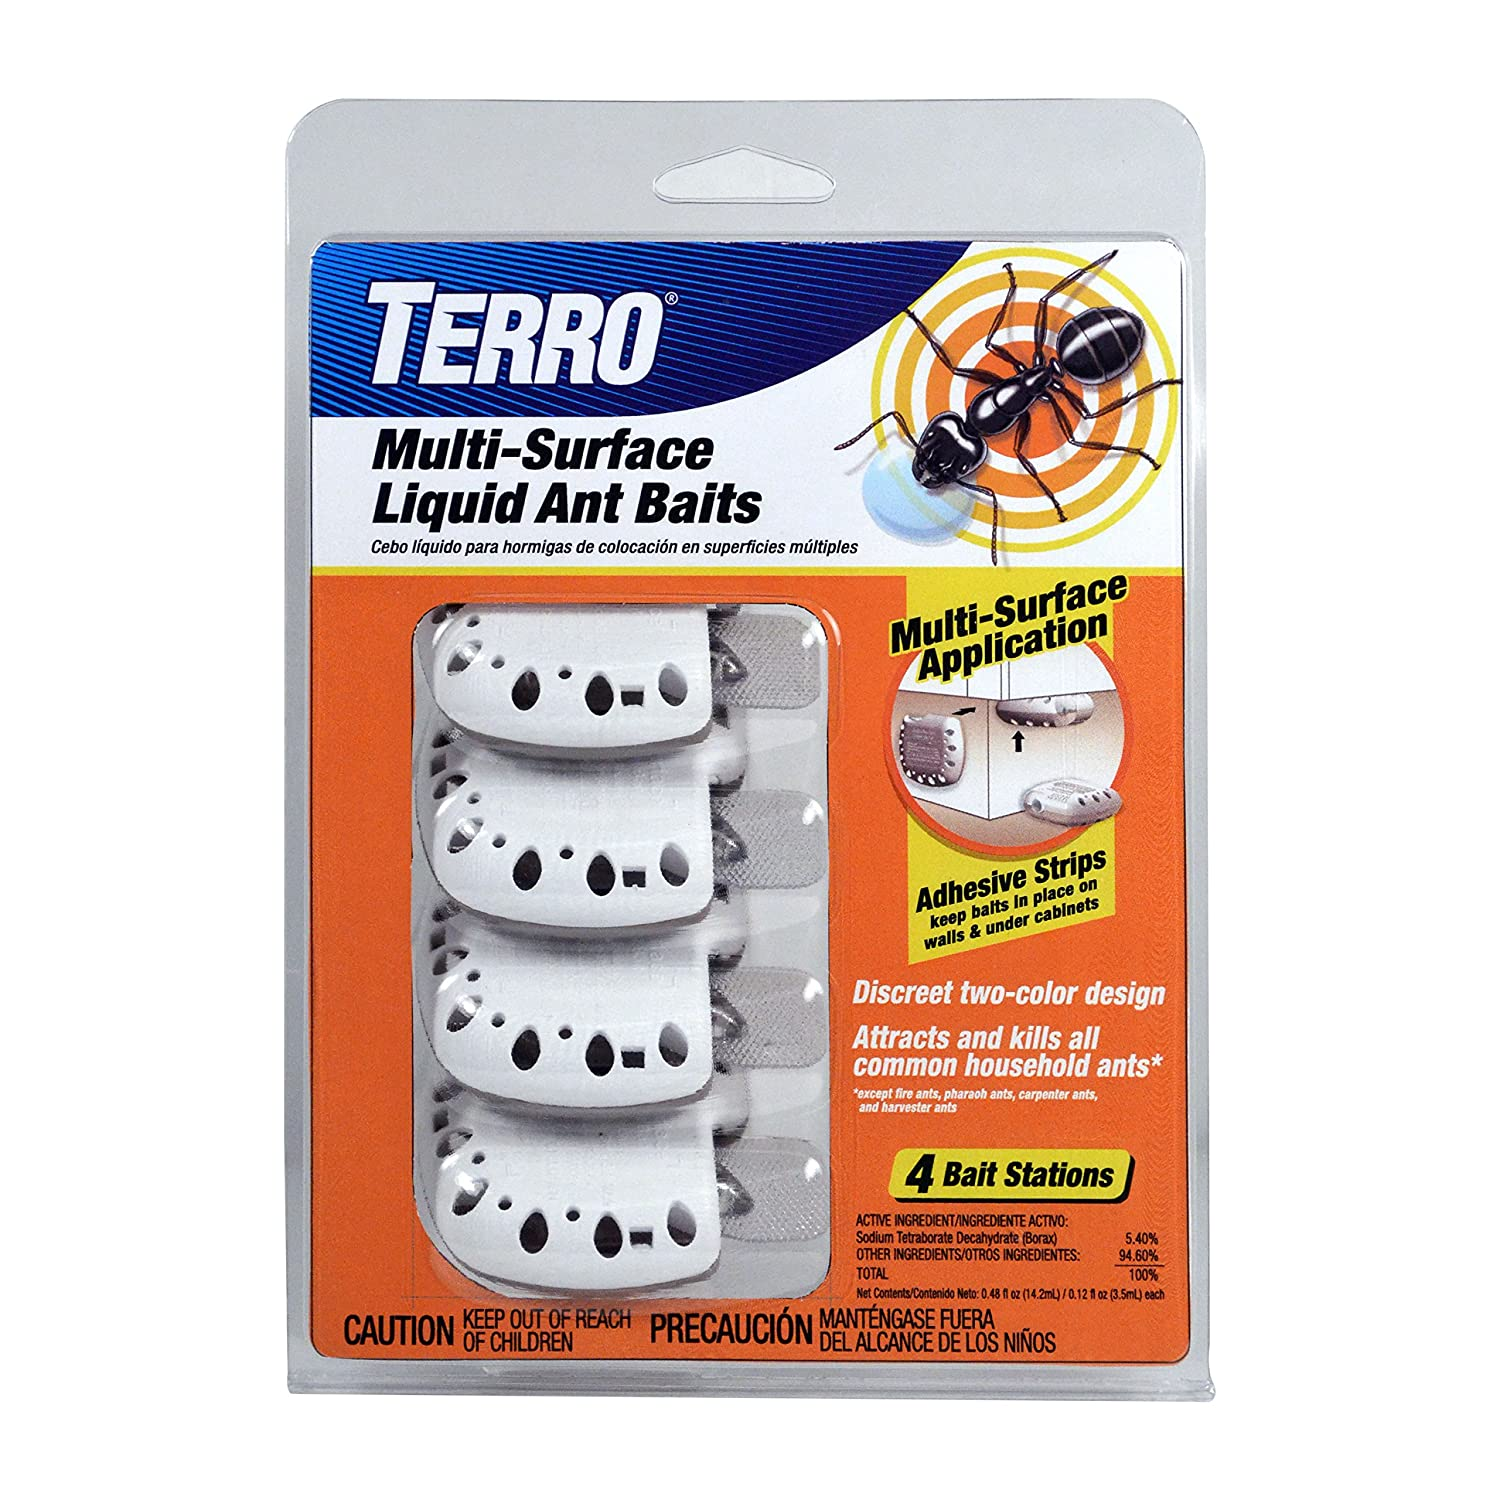 Amazon.com : Terro Multi Surface Liquid Ant Baits with Adhesive Strips for Discreet baiting : Garden & Outdoor